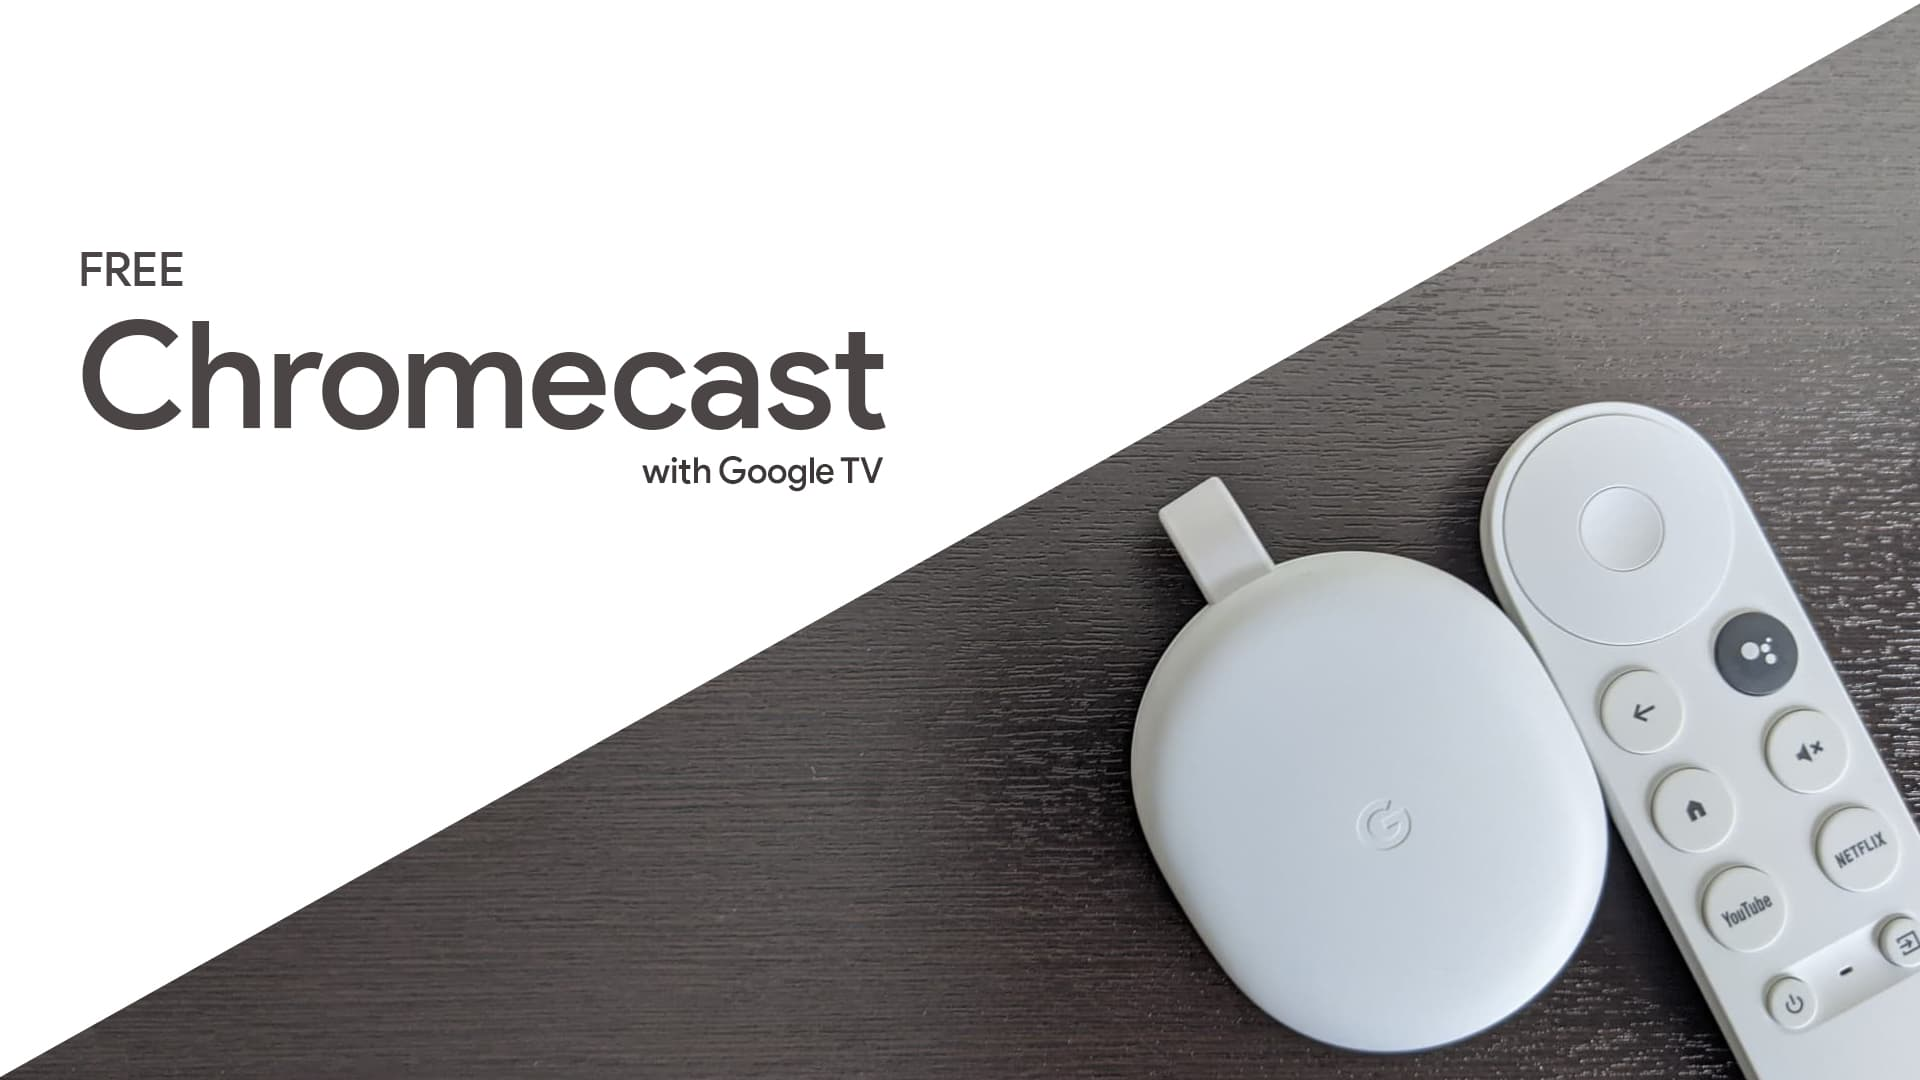 Youtube TV subscribers are being surprised with a free Chromecast with Google TV for their loyalty